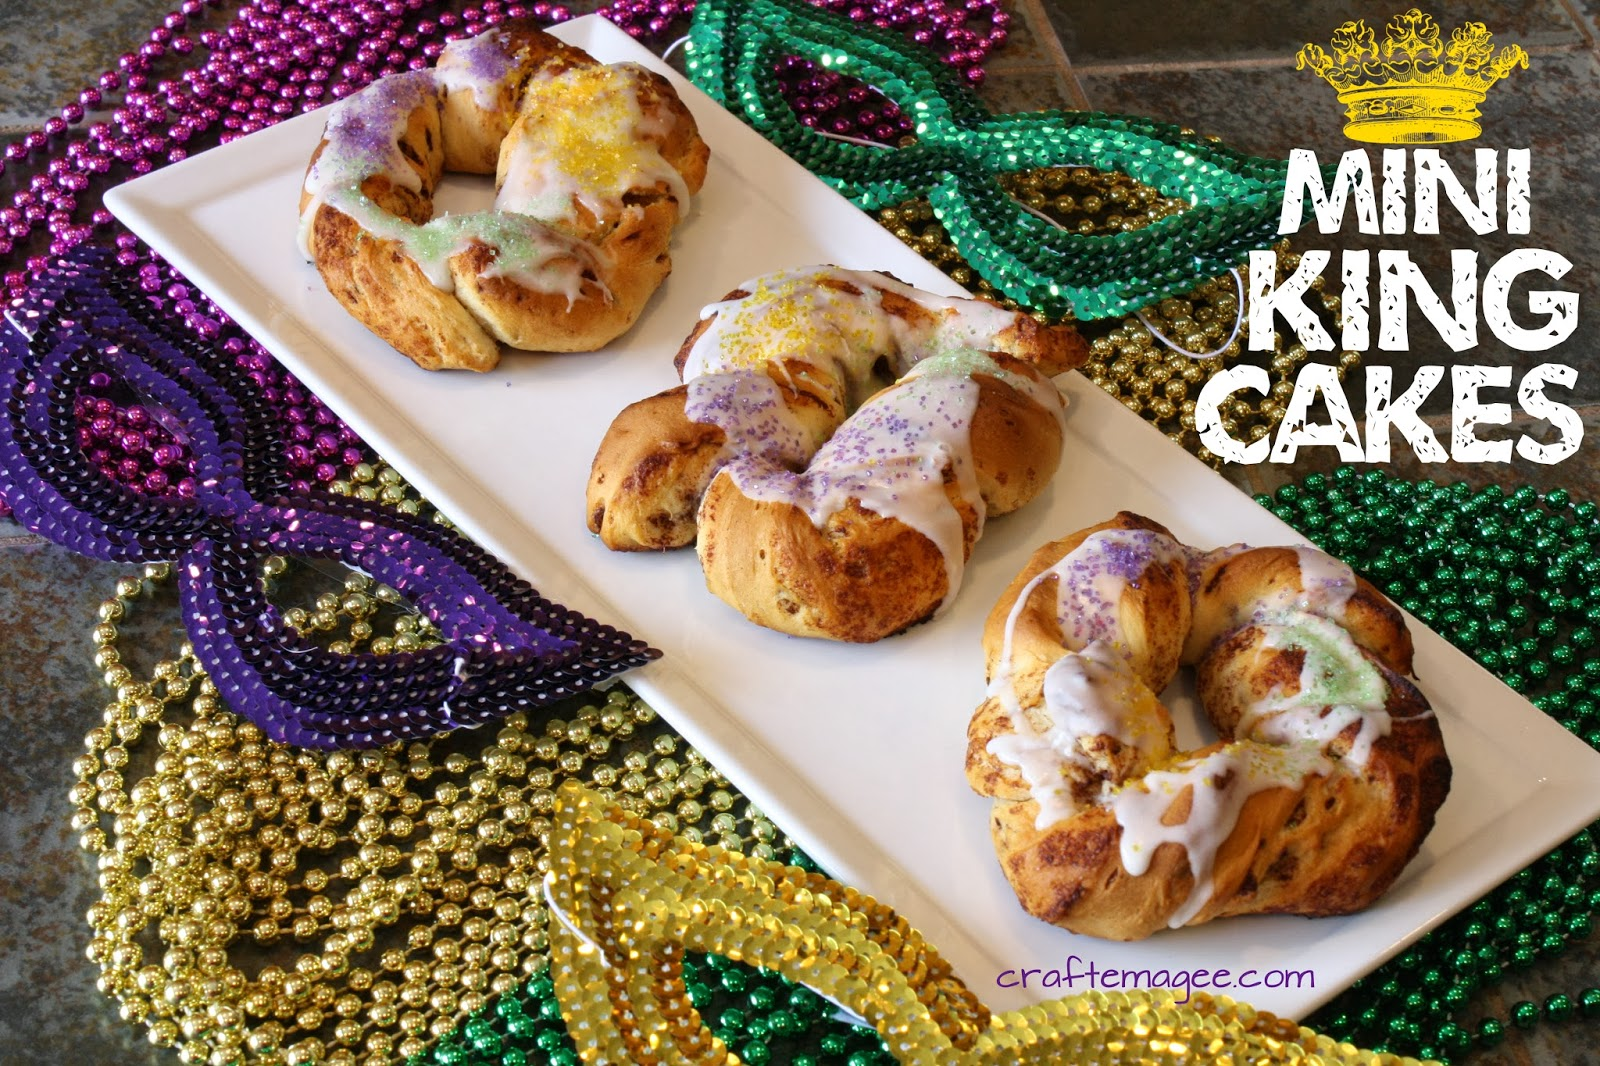 The Plastic Baby In A King Cake